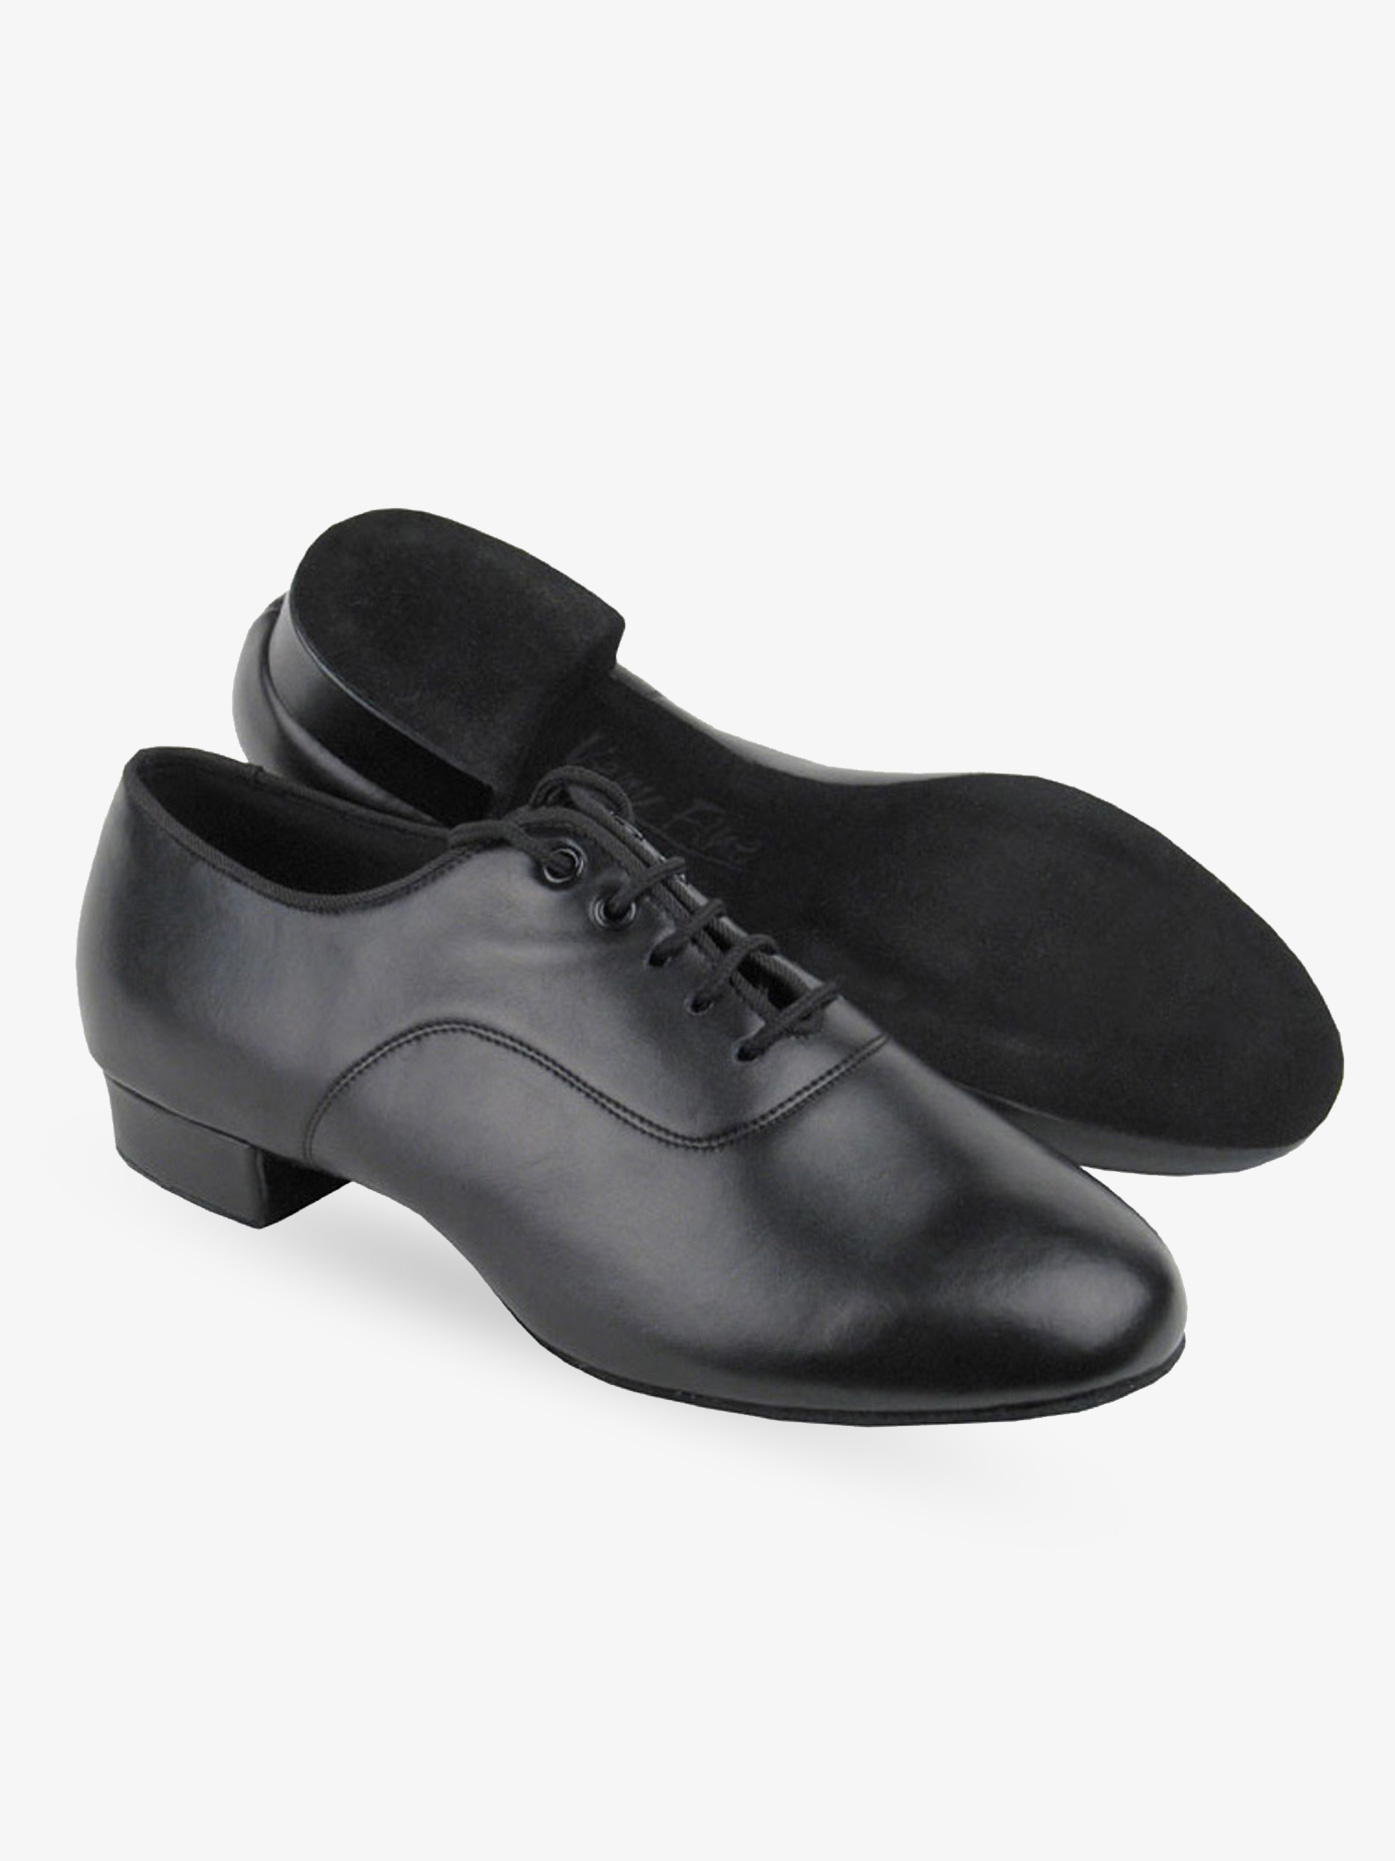 Very Fine Shoes Mens Standard-C Series Ballroom Shoes C2503